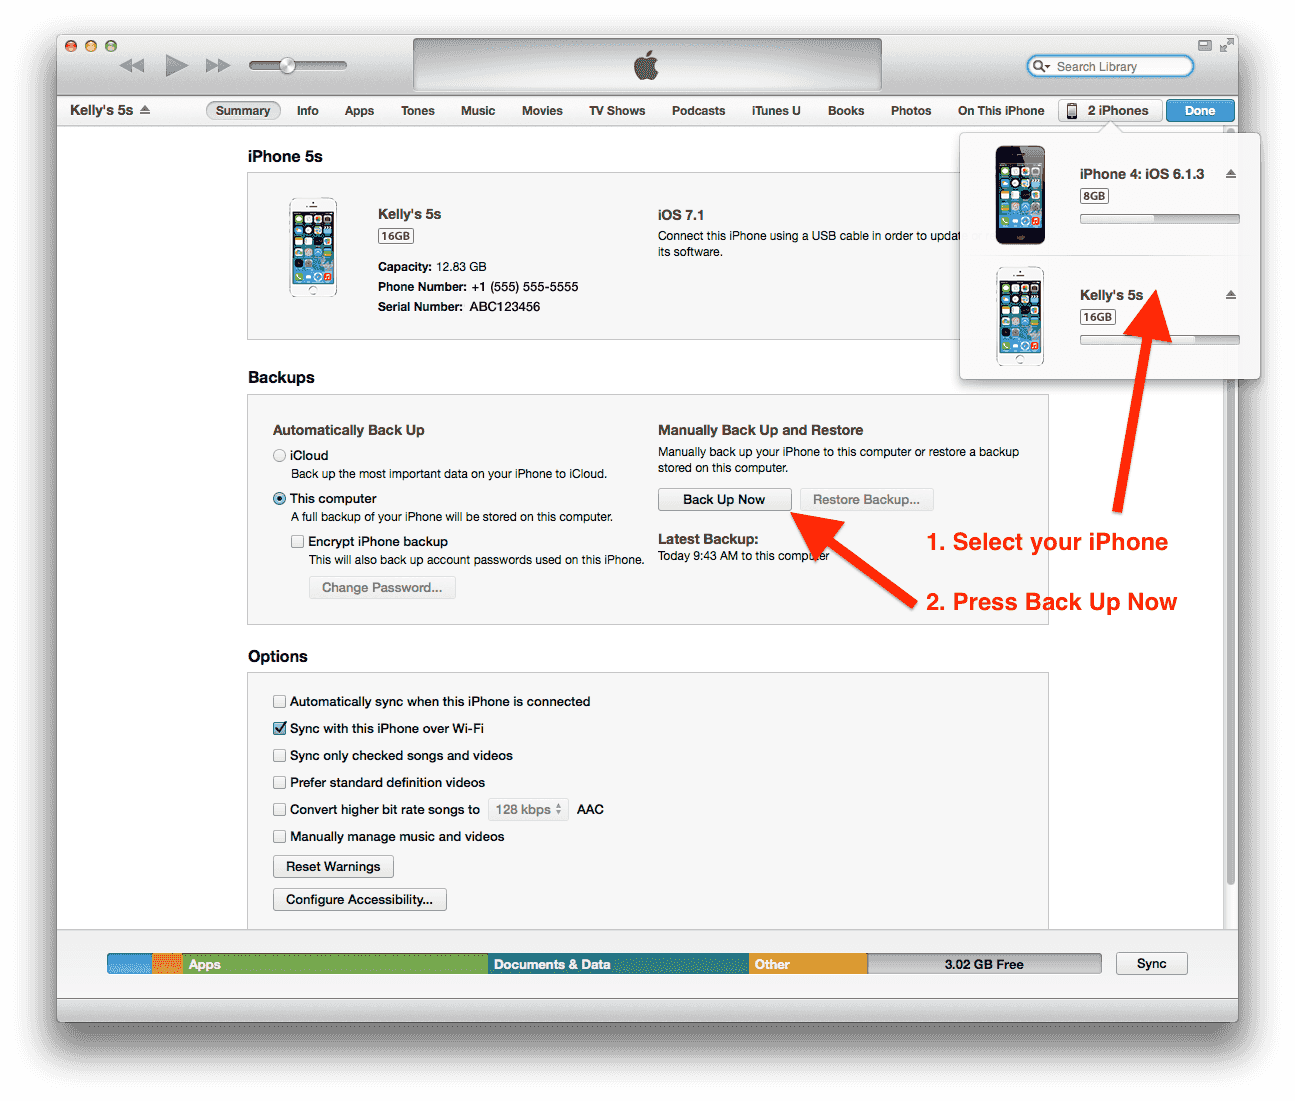 How to select your iPhone and make a backup in iTunes.